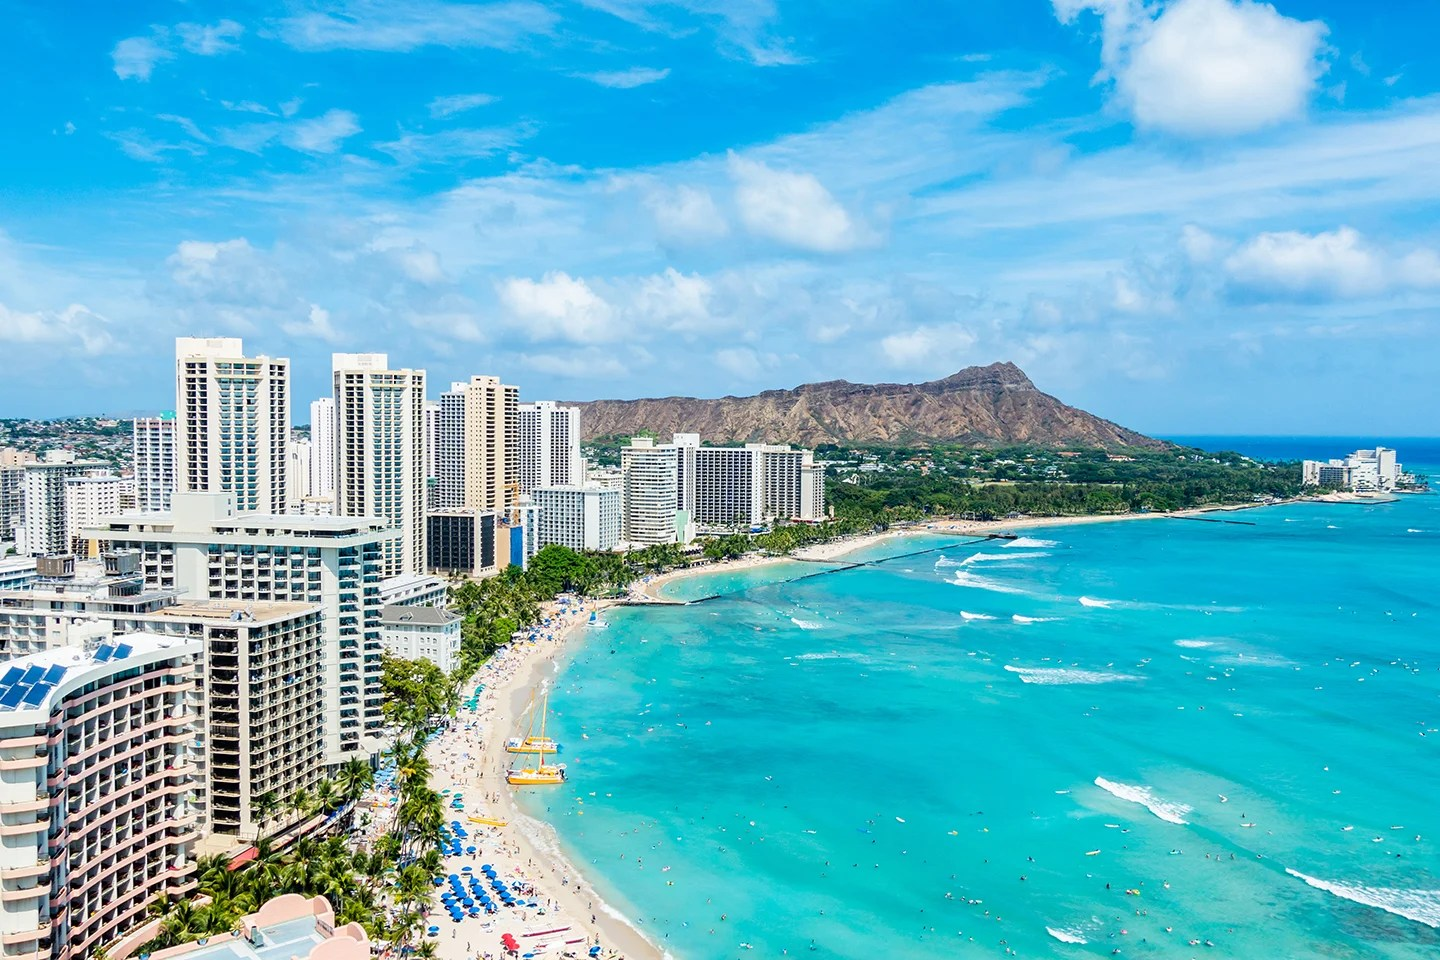 An aerial view of Waikiki Beach in Honolulu, Hawaii, with white tower blocks on the left, bright blue sea on the right, and Diamond Crater mountain in the distance.